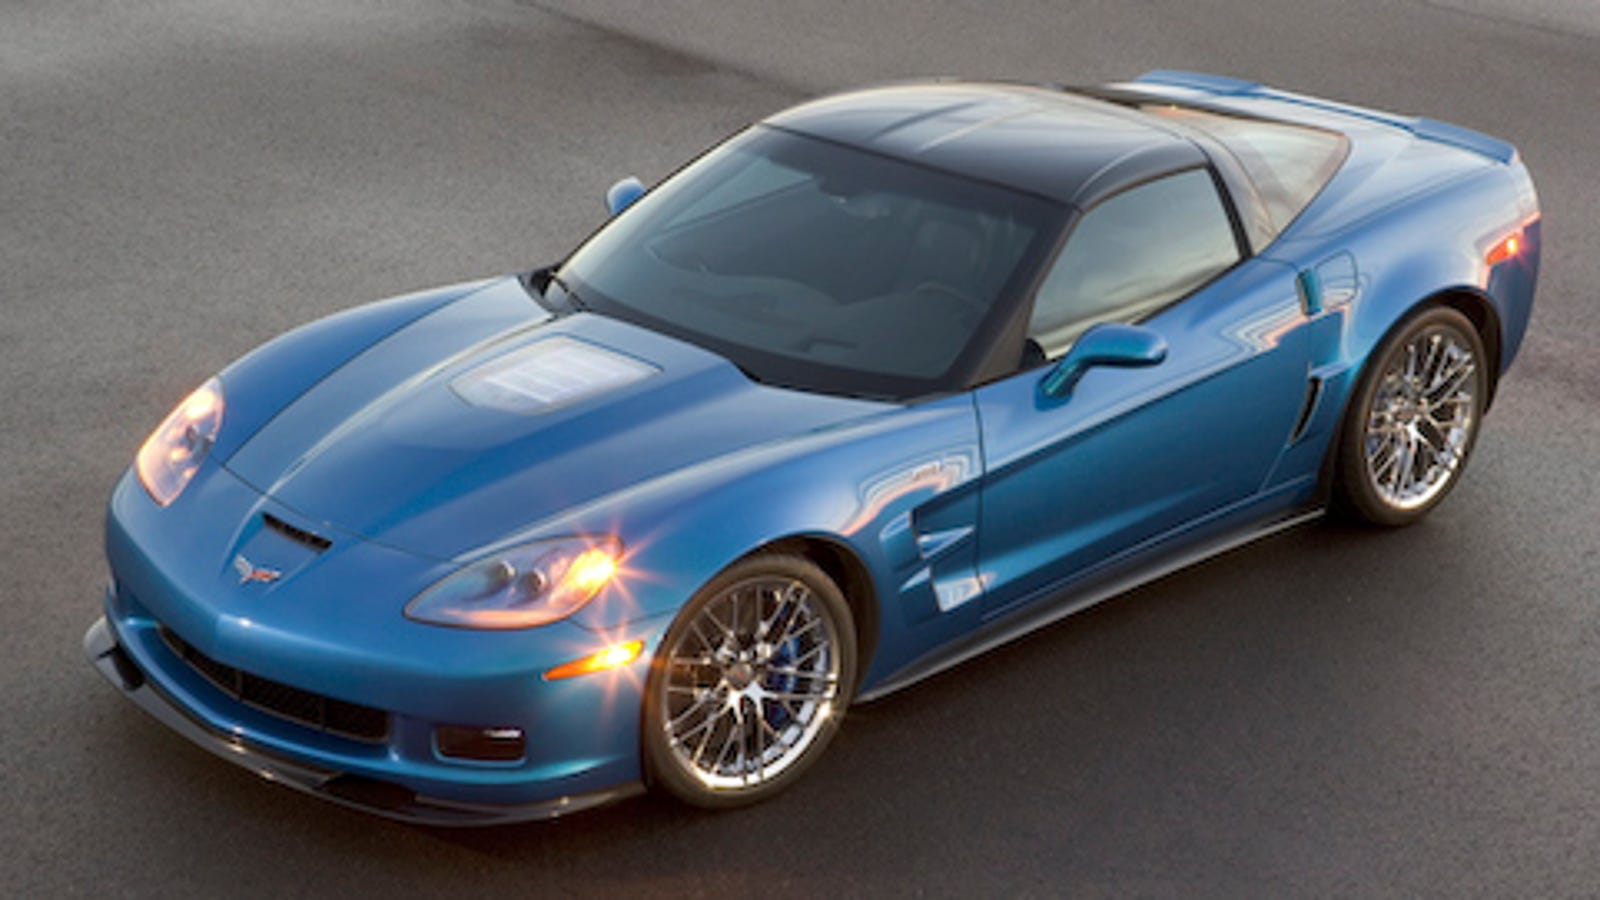 2009 Corvette Zr1 Pricing Released 638 Hp For 103 300